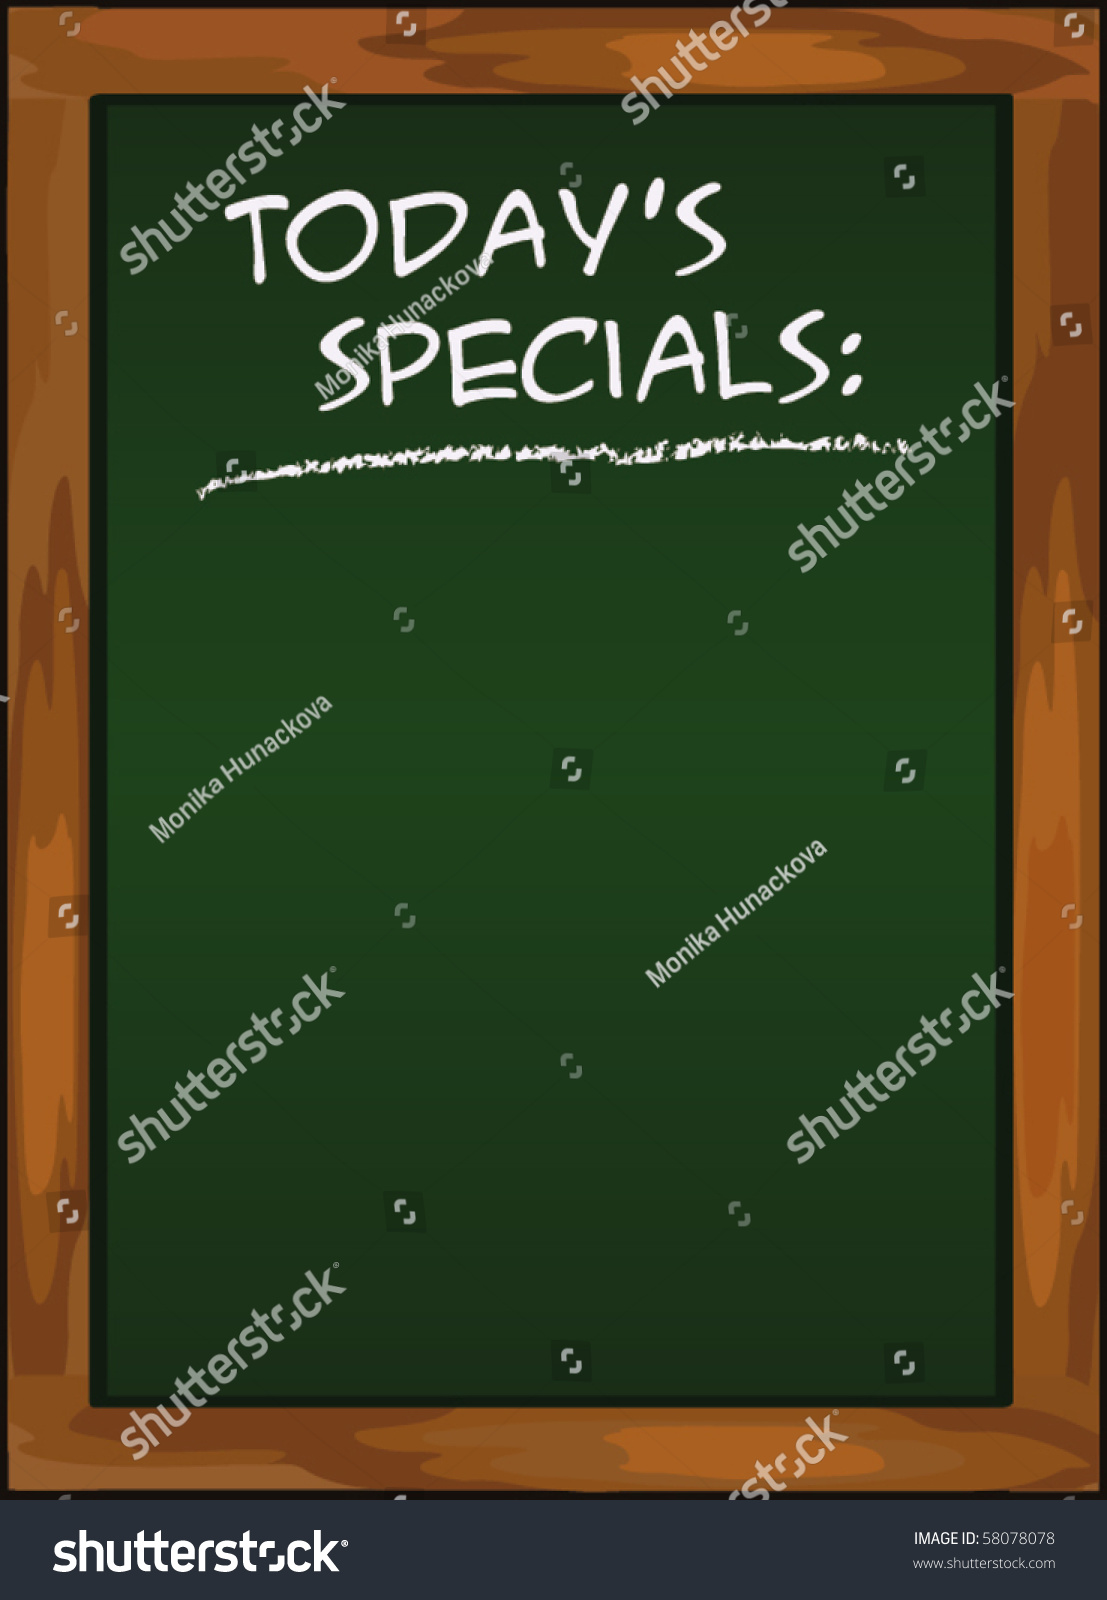 Menu Blackboard Todays Specials Chalkboard Green Stock Vector ...